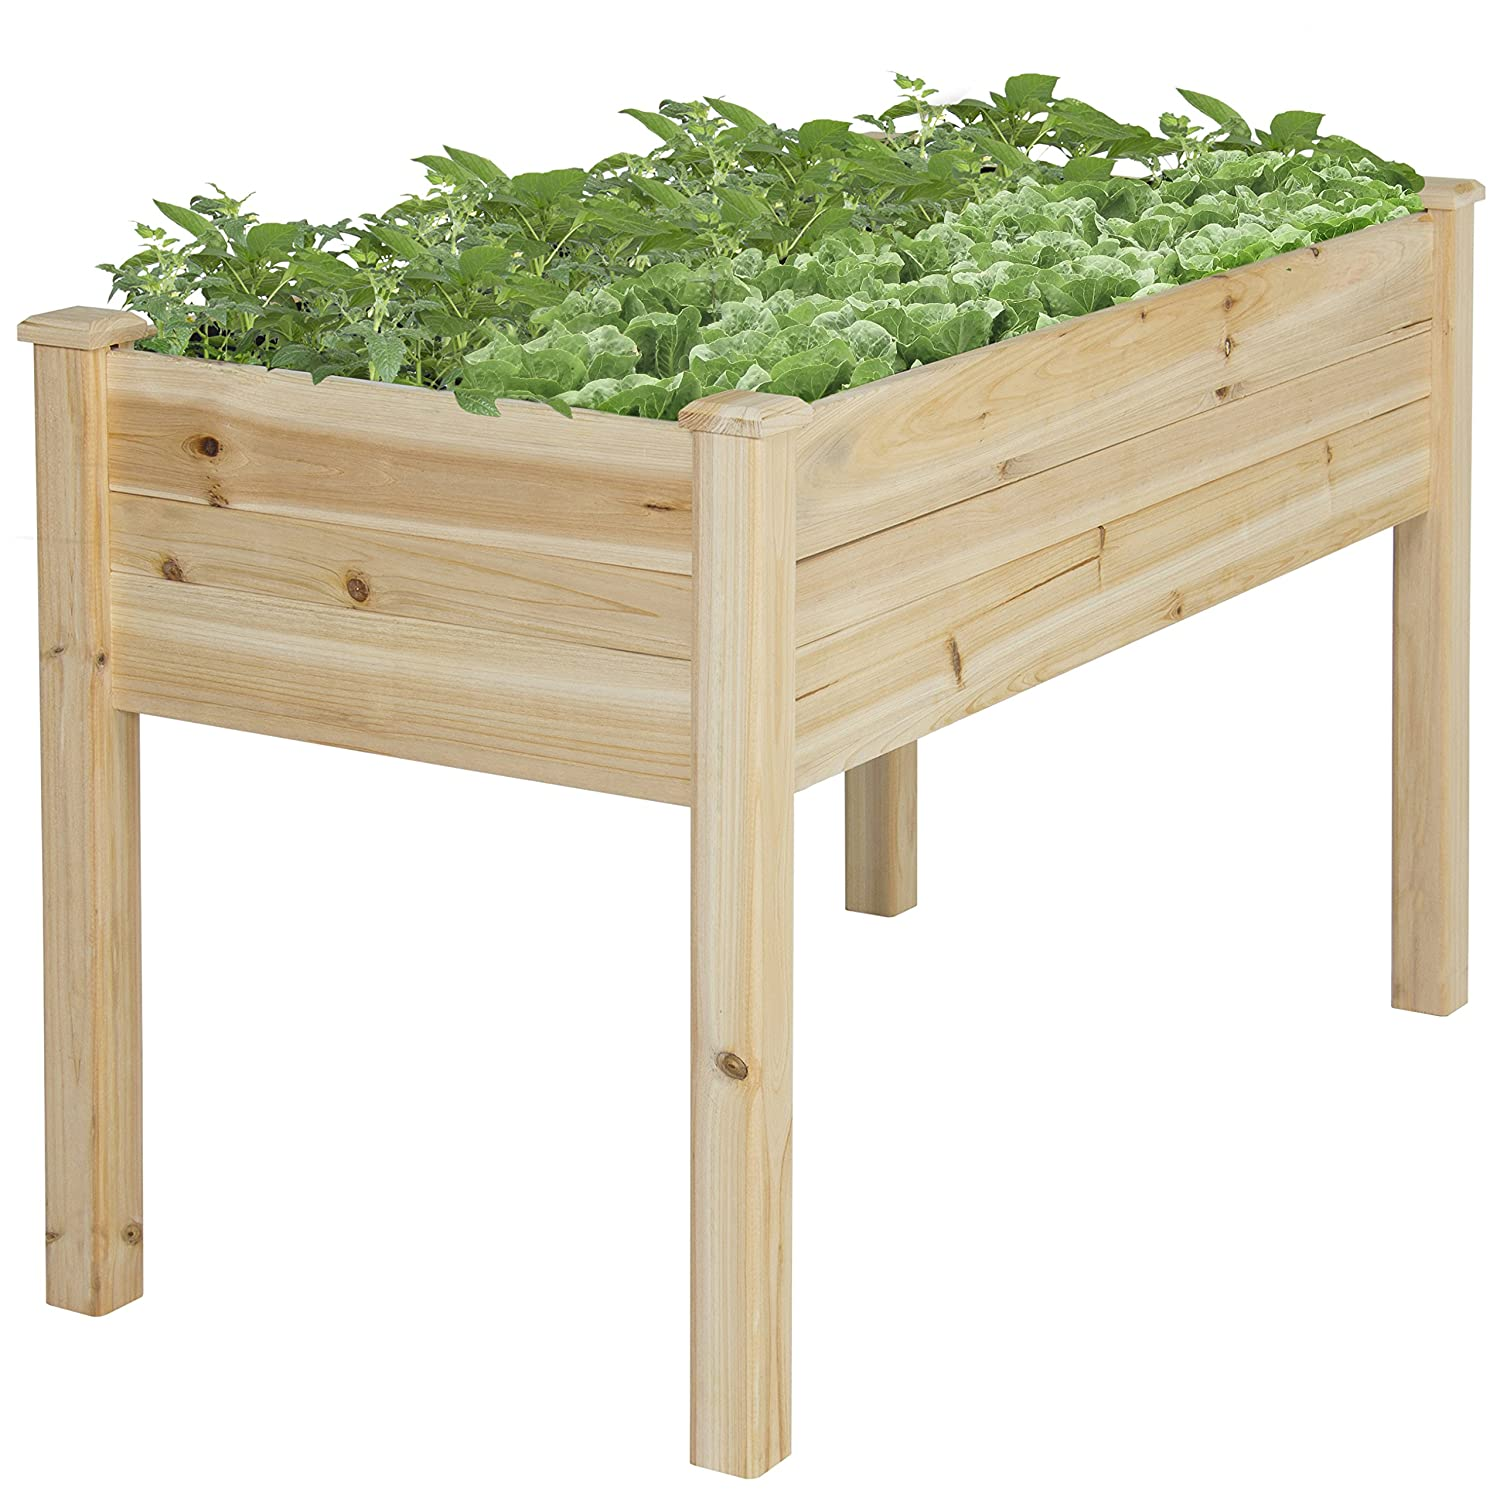 Beau Amazon.com : Best Choice Products Raised Vegetable Garden Bed Elevated  Planter Kit Grow Gardening Vegetables : Garden U0026 Outdoor